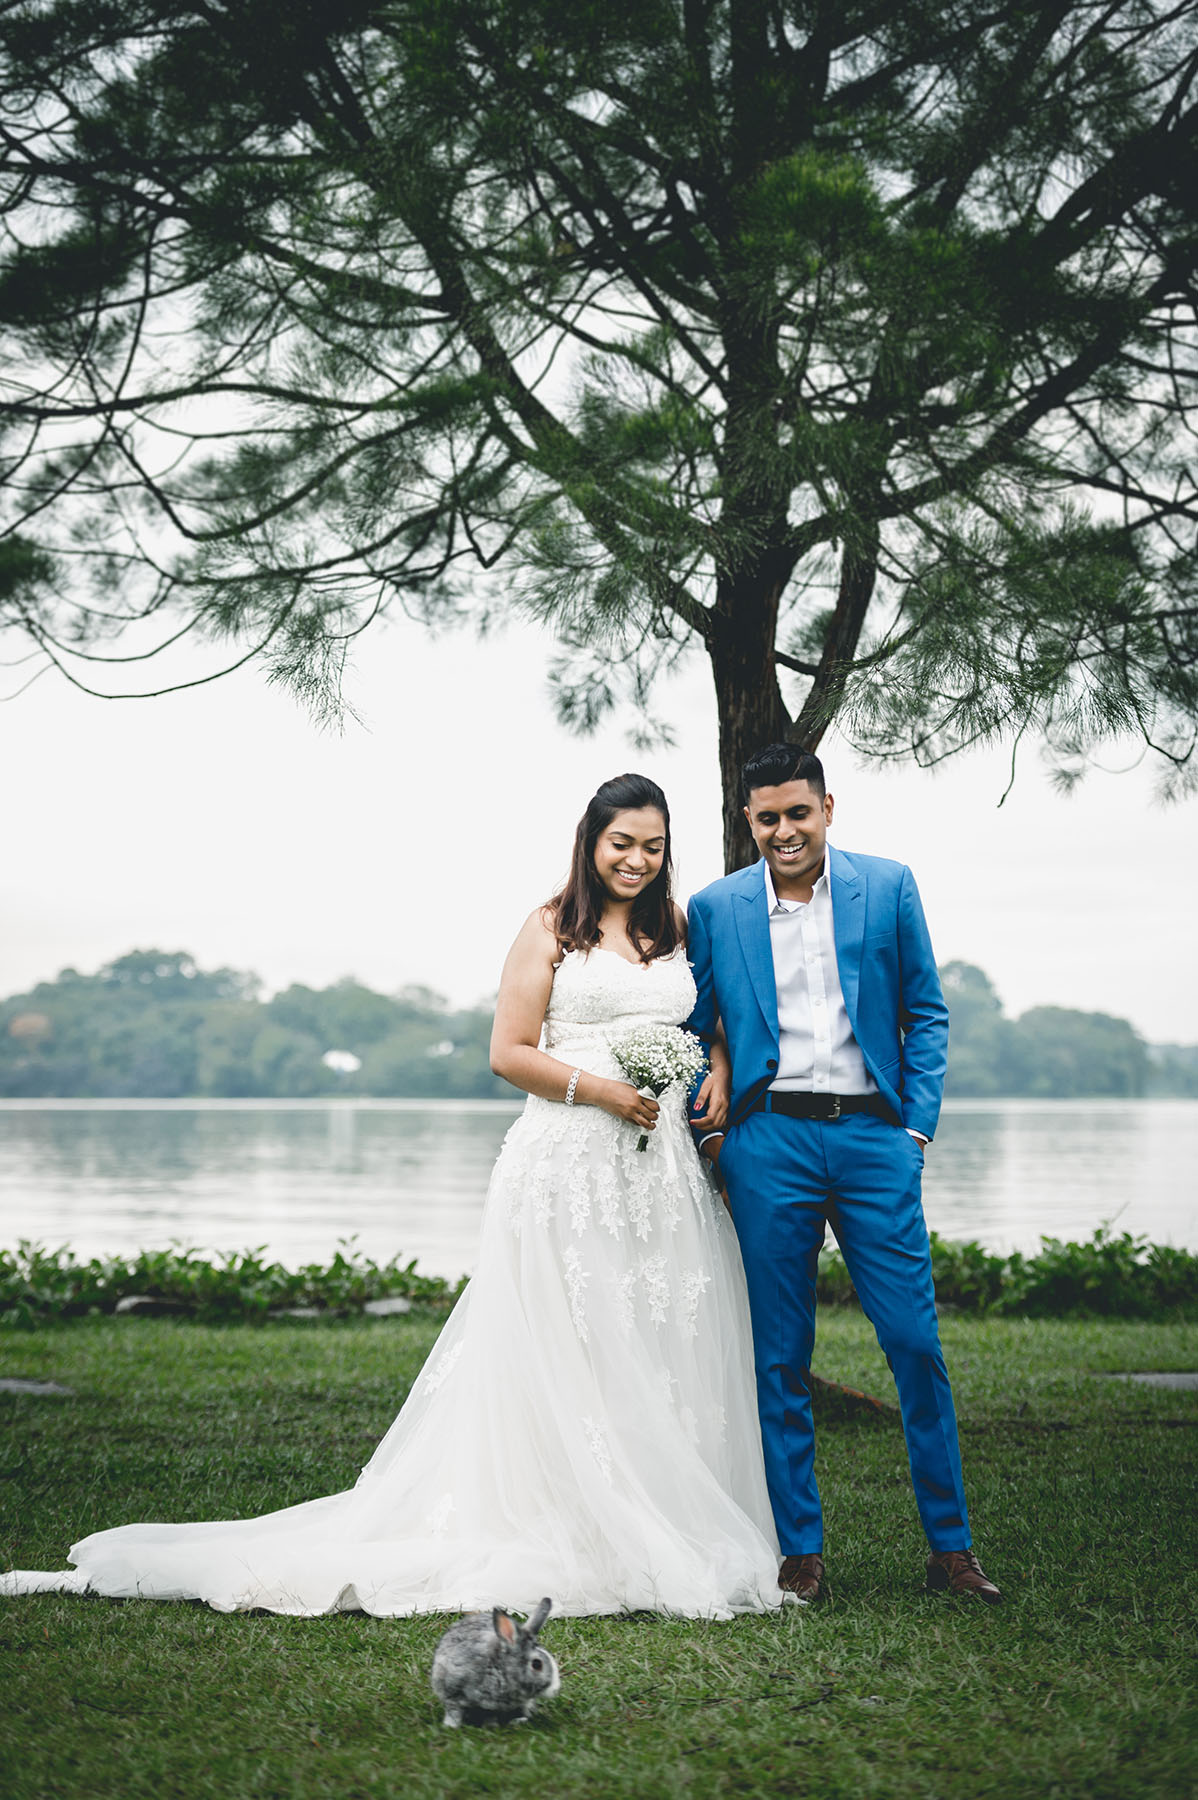 1 Prewedding upper seletar 00006c.JPG